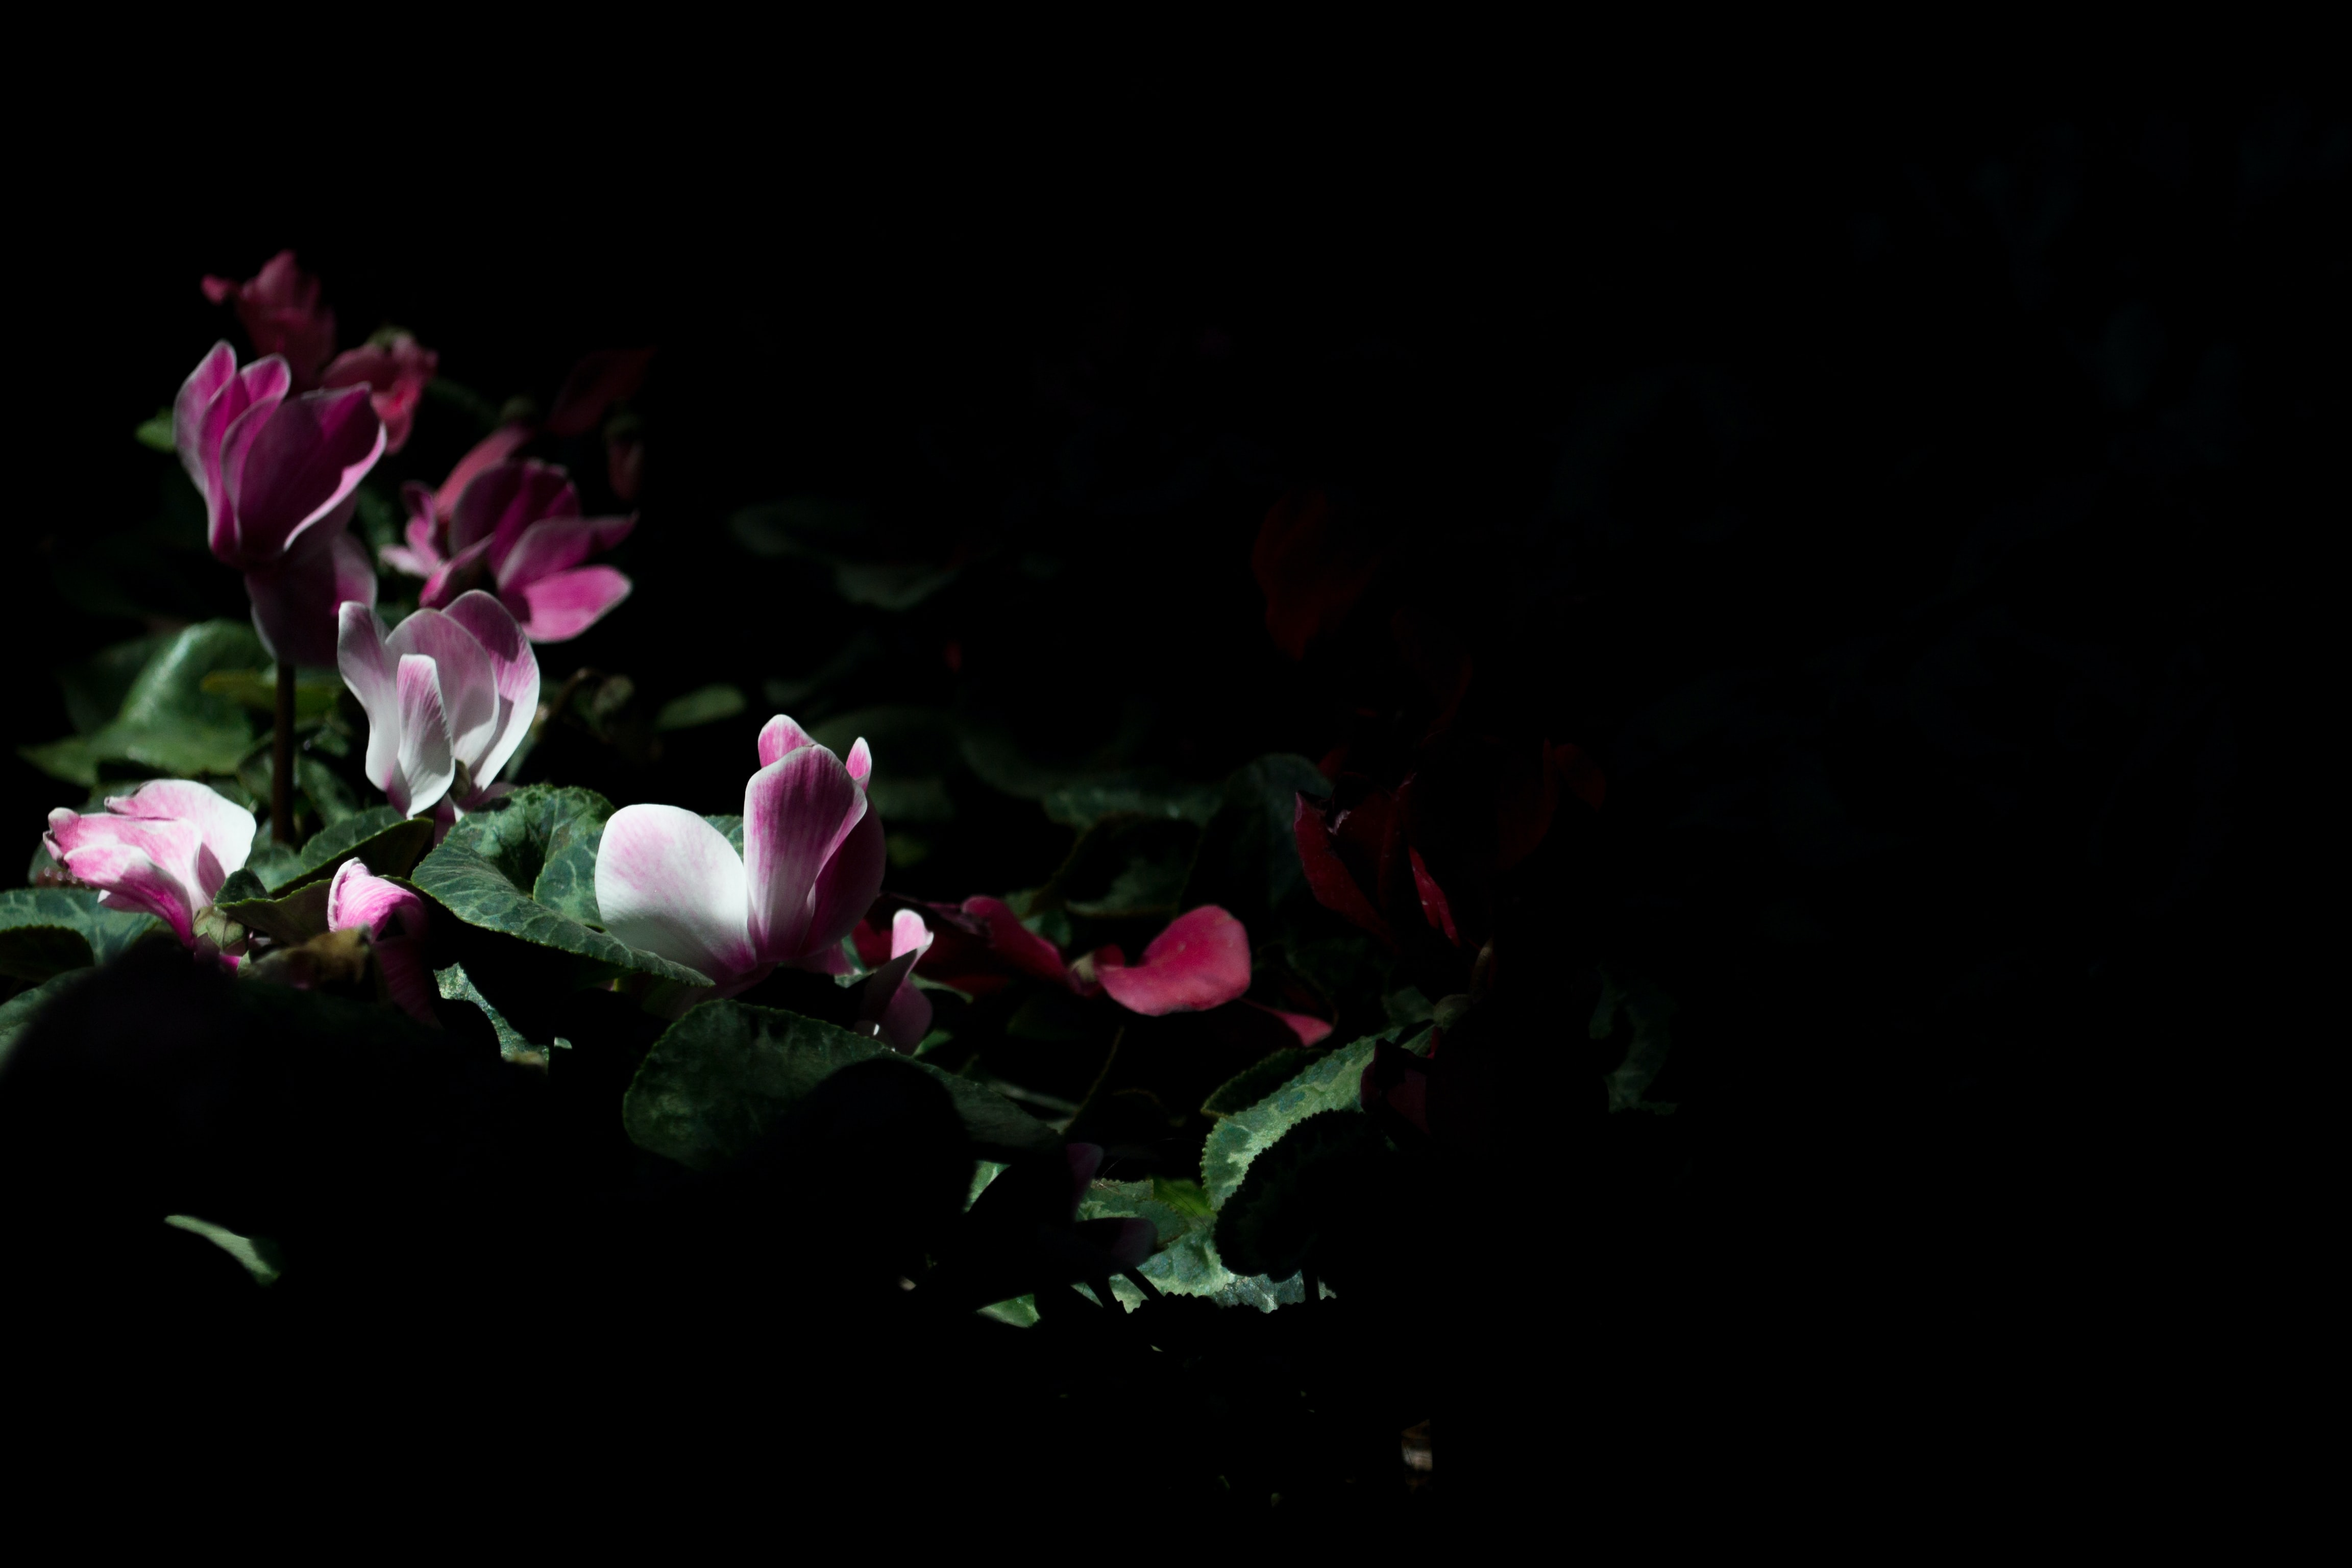 Delicate pink flowers surrounded by darkness